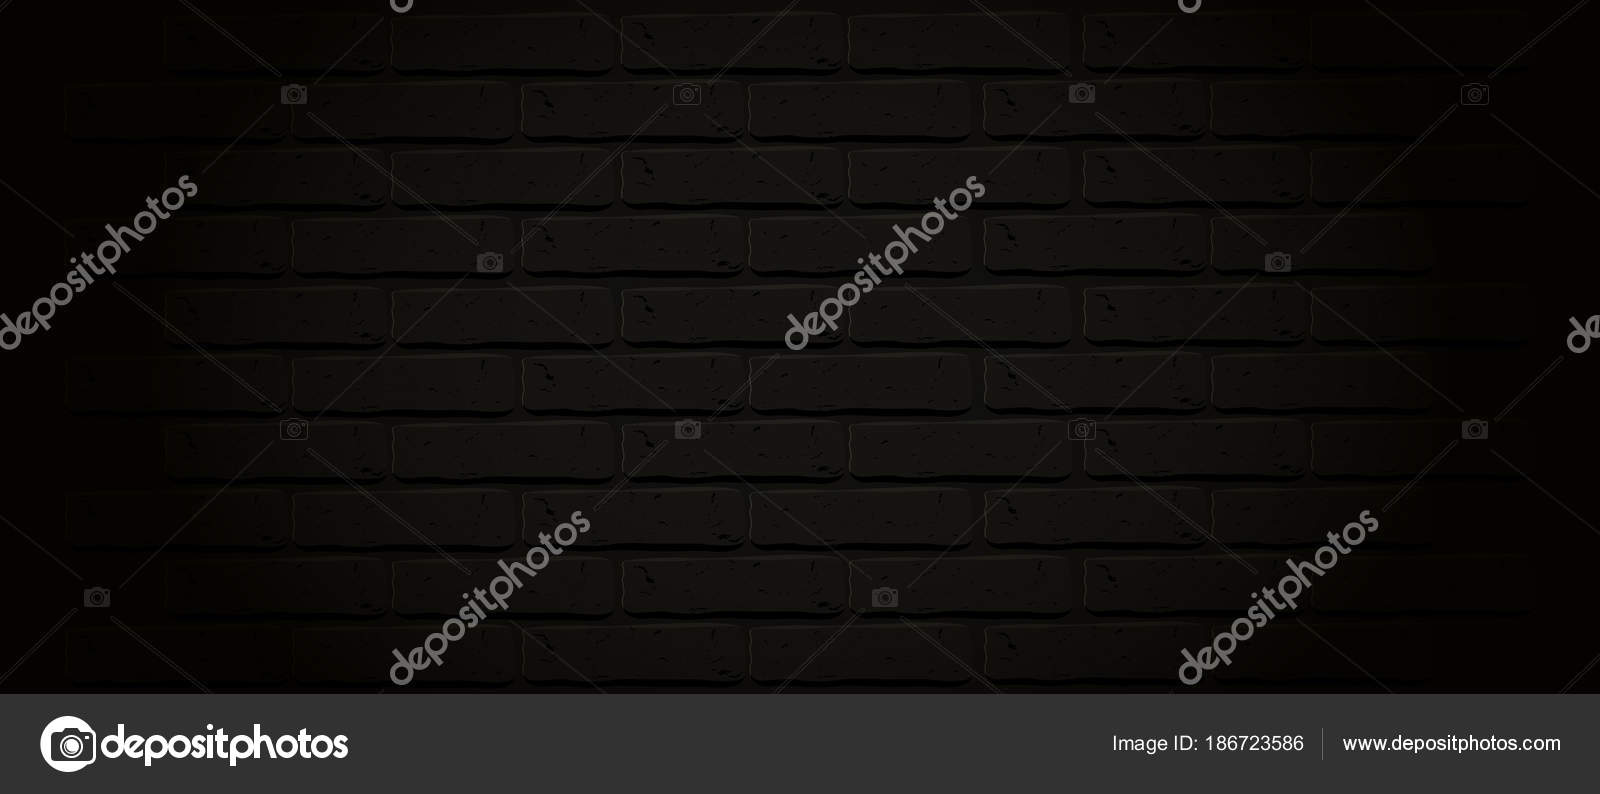 Grunge Dark Wallpaper Vintage Stonewall Street City Basic Illustration For Banners Isolated Rough Clean Rocks Backdrop Night Fog Vector By Alenaspl